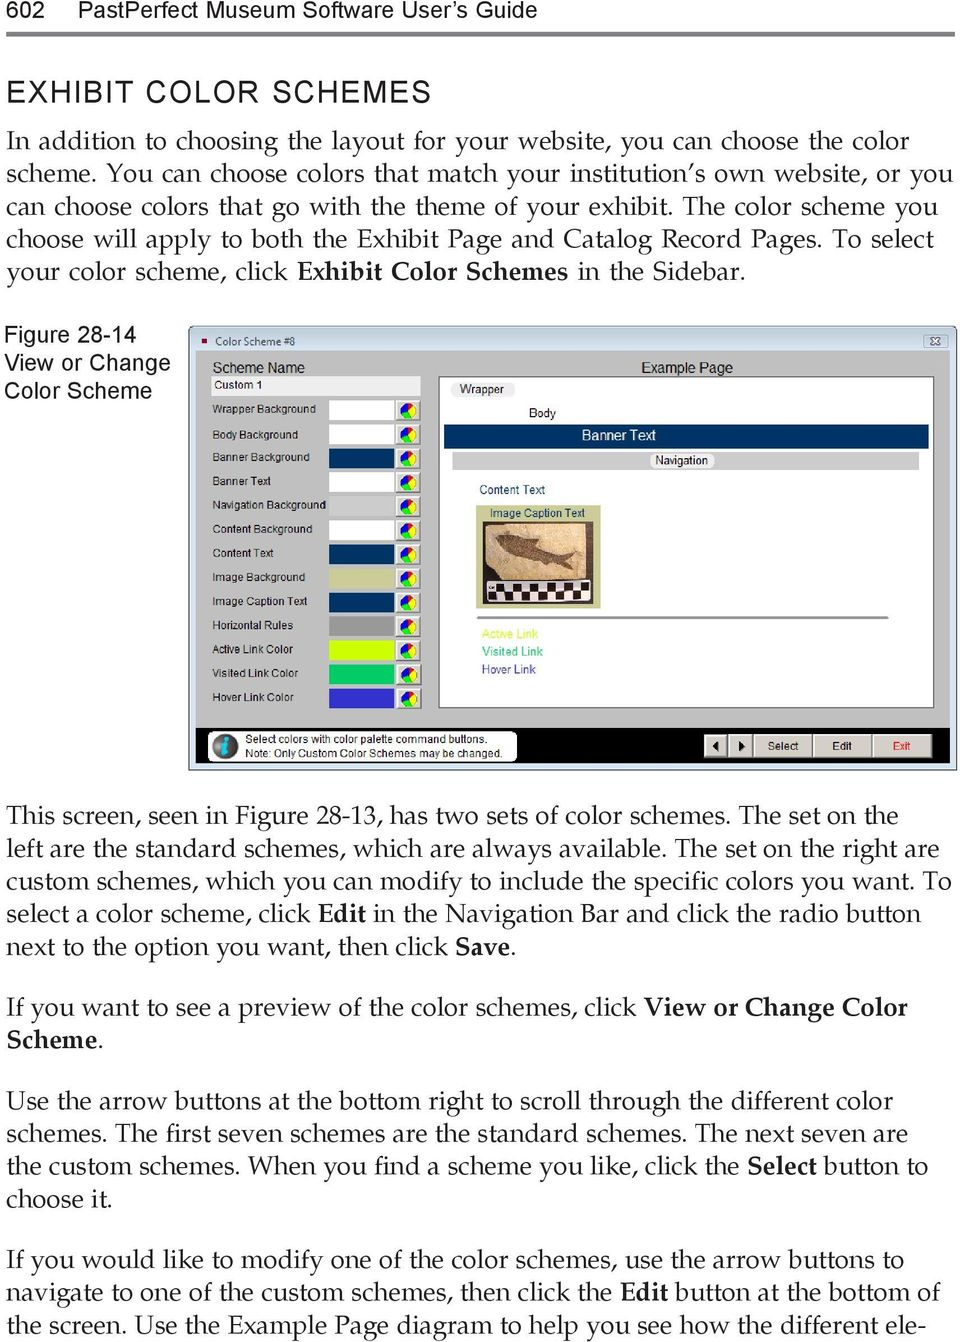 The color scheme you choose will apply to both the Exhibit Page and Catalog Record Pages. To select your color scheme, click Exhibit Color Schemes in the Sidebar.